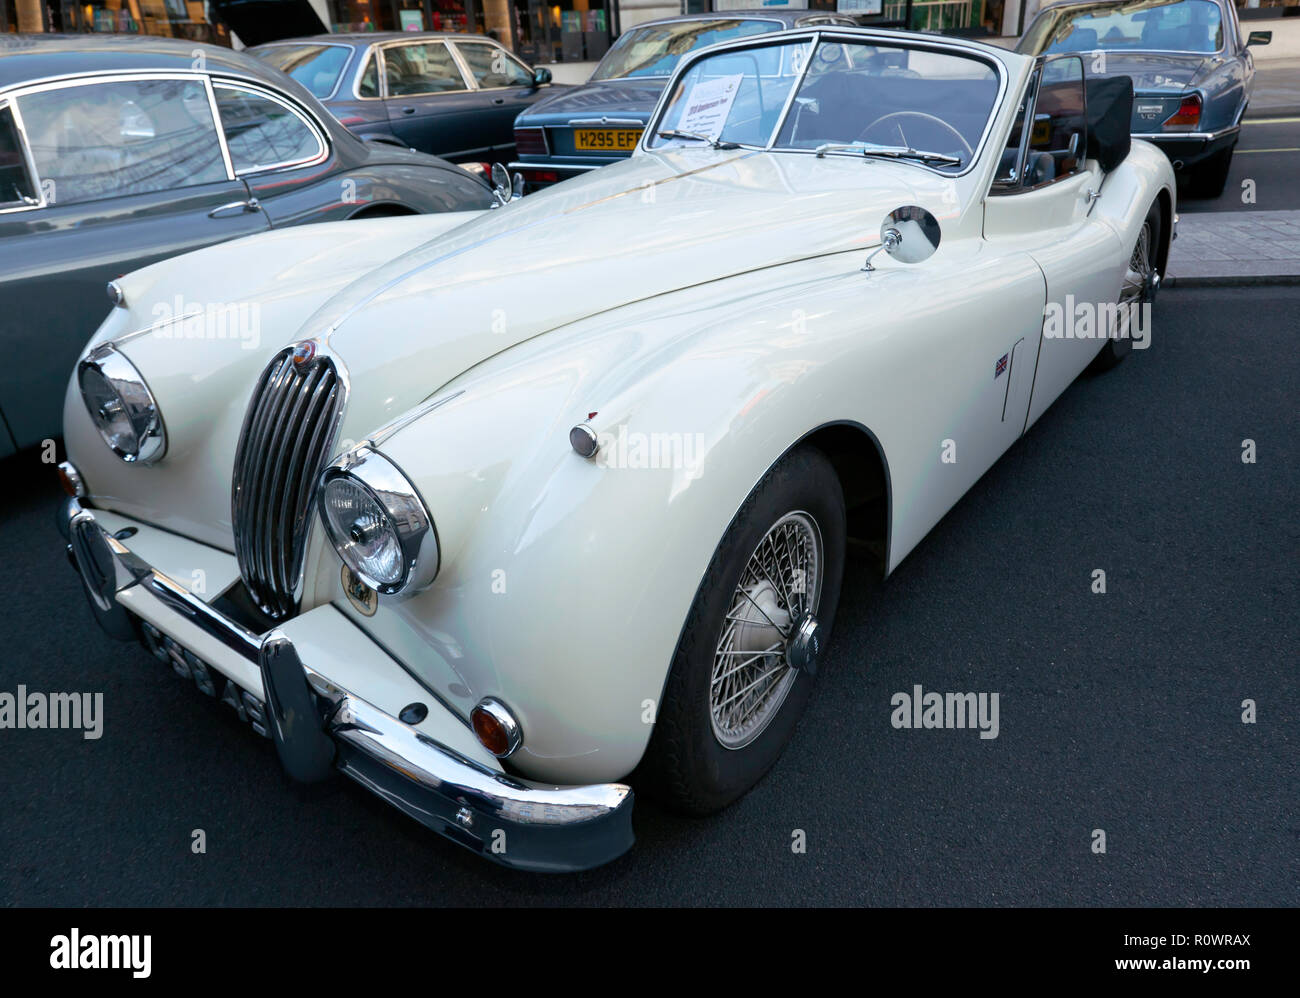 Three-quarter front view of a  1954, white, Jaguar XK 140  on display at the Regents Street Motor Show, 2018 Stock Photo